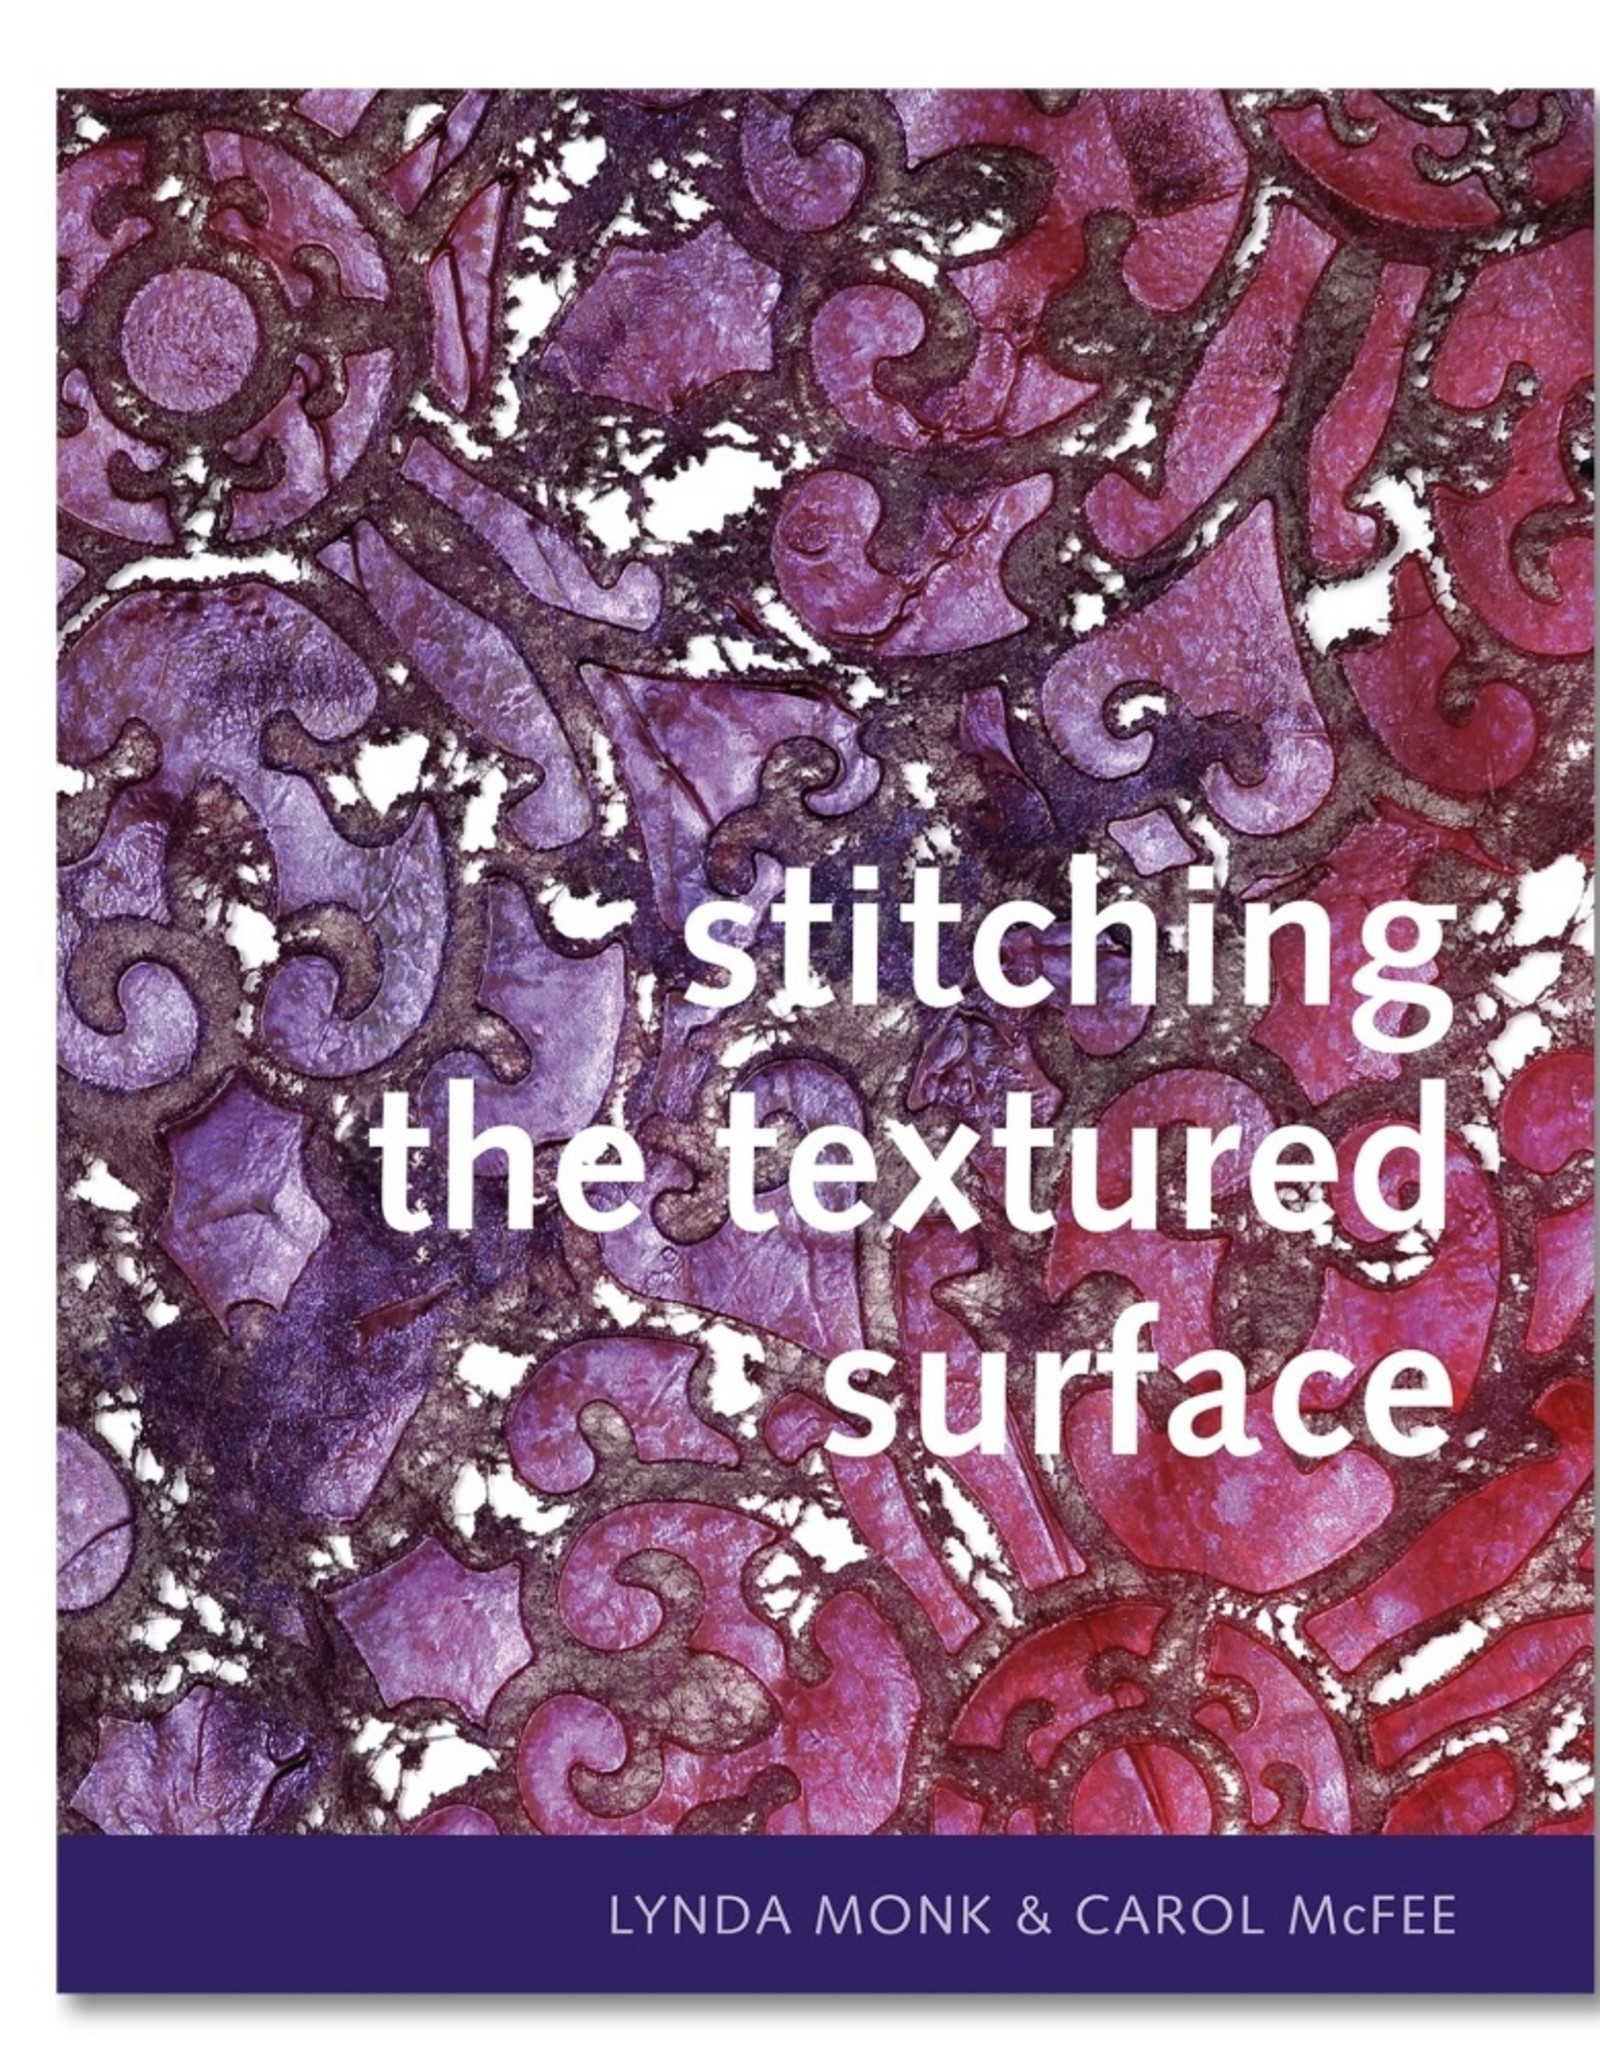 Stitching the Textured Surface / Linda Monk & Carol McFee